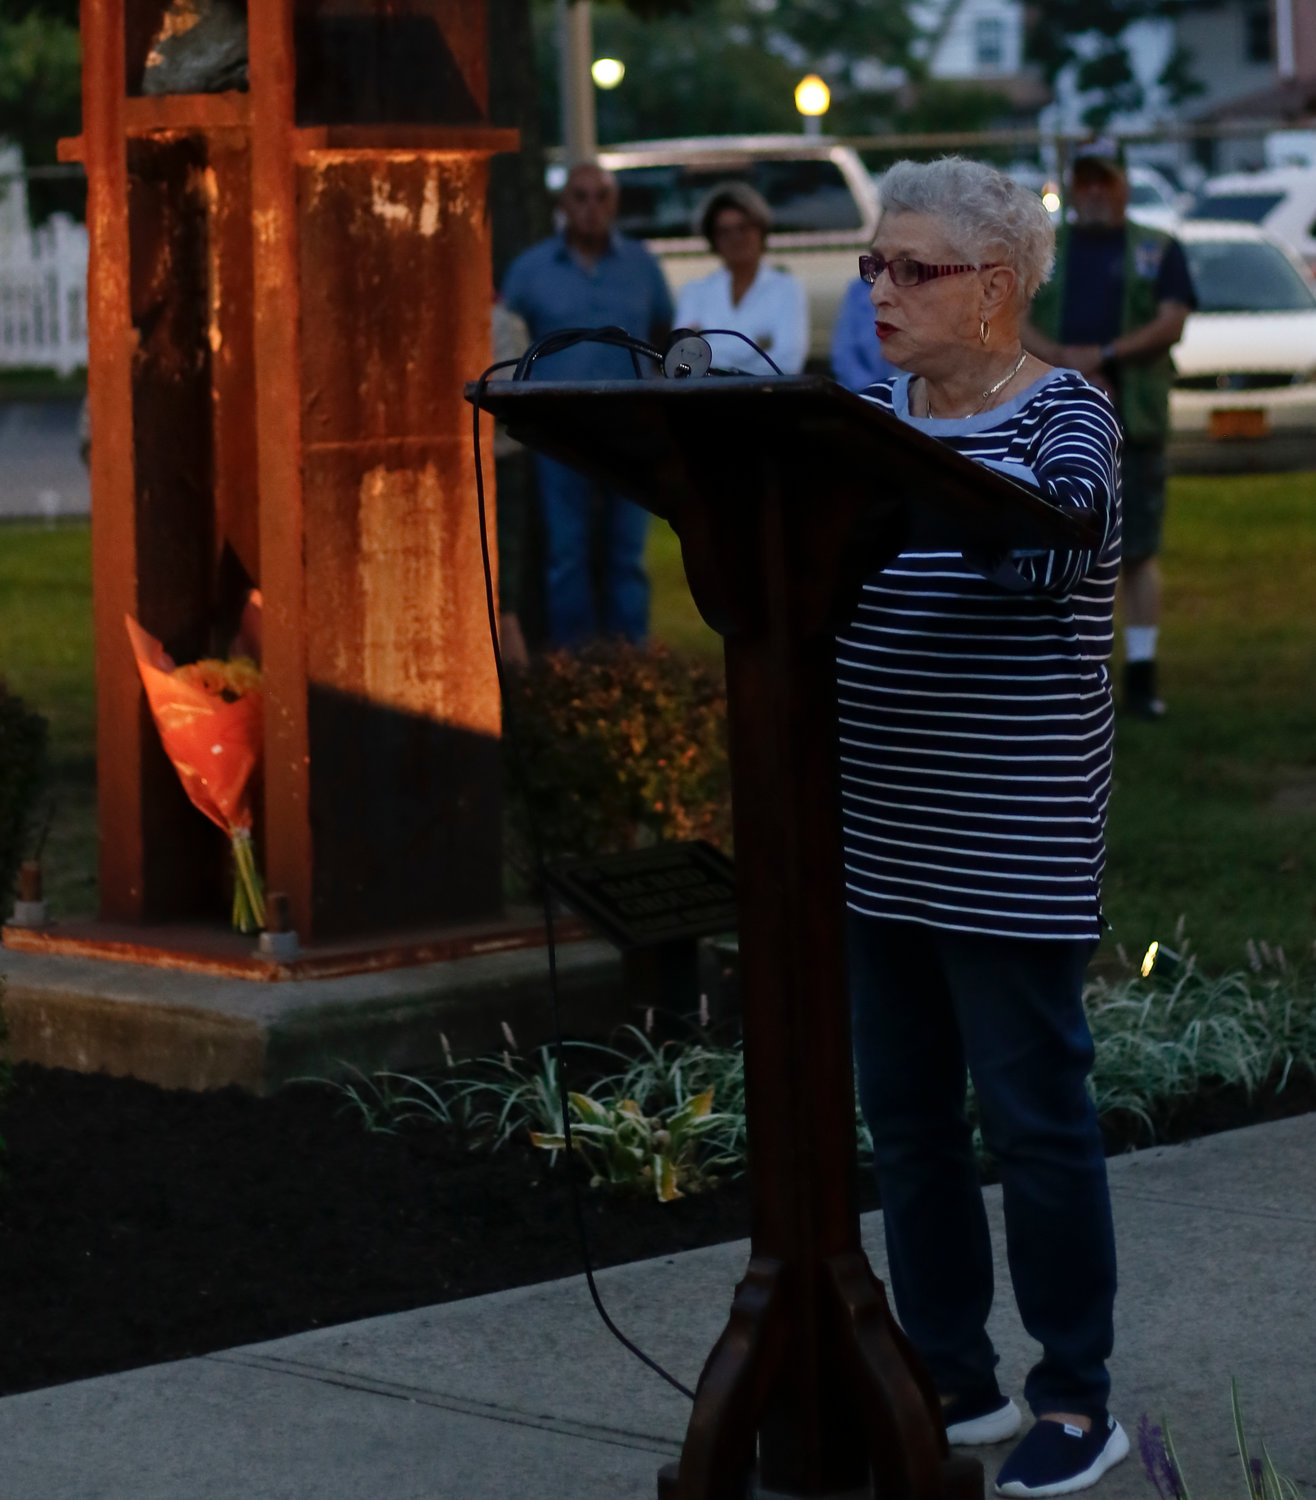 East Rockaway resident Barbara Stern, whose son, Andrew, died on 9/11, reflected on how different the country was on the 18th anniversary of the attacks compared to the immediate days after in 2001.